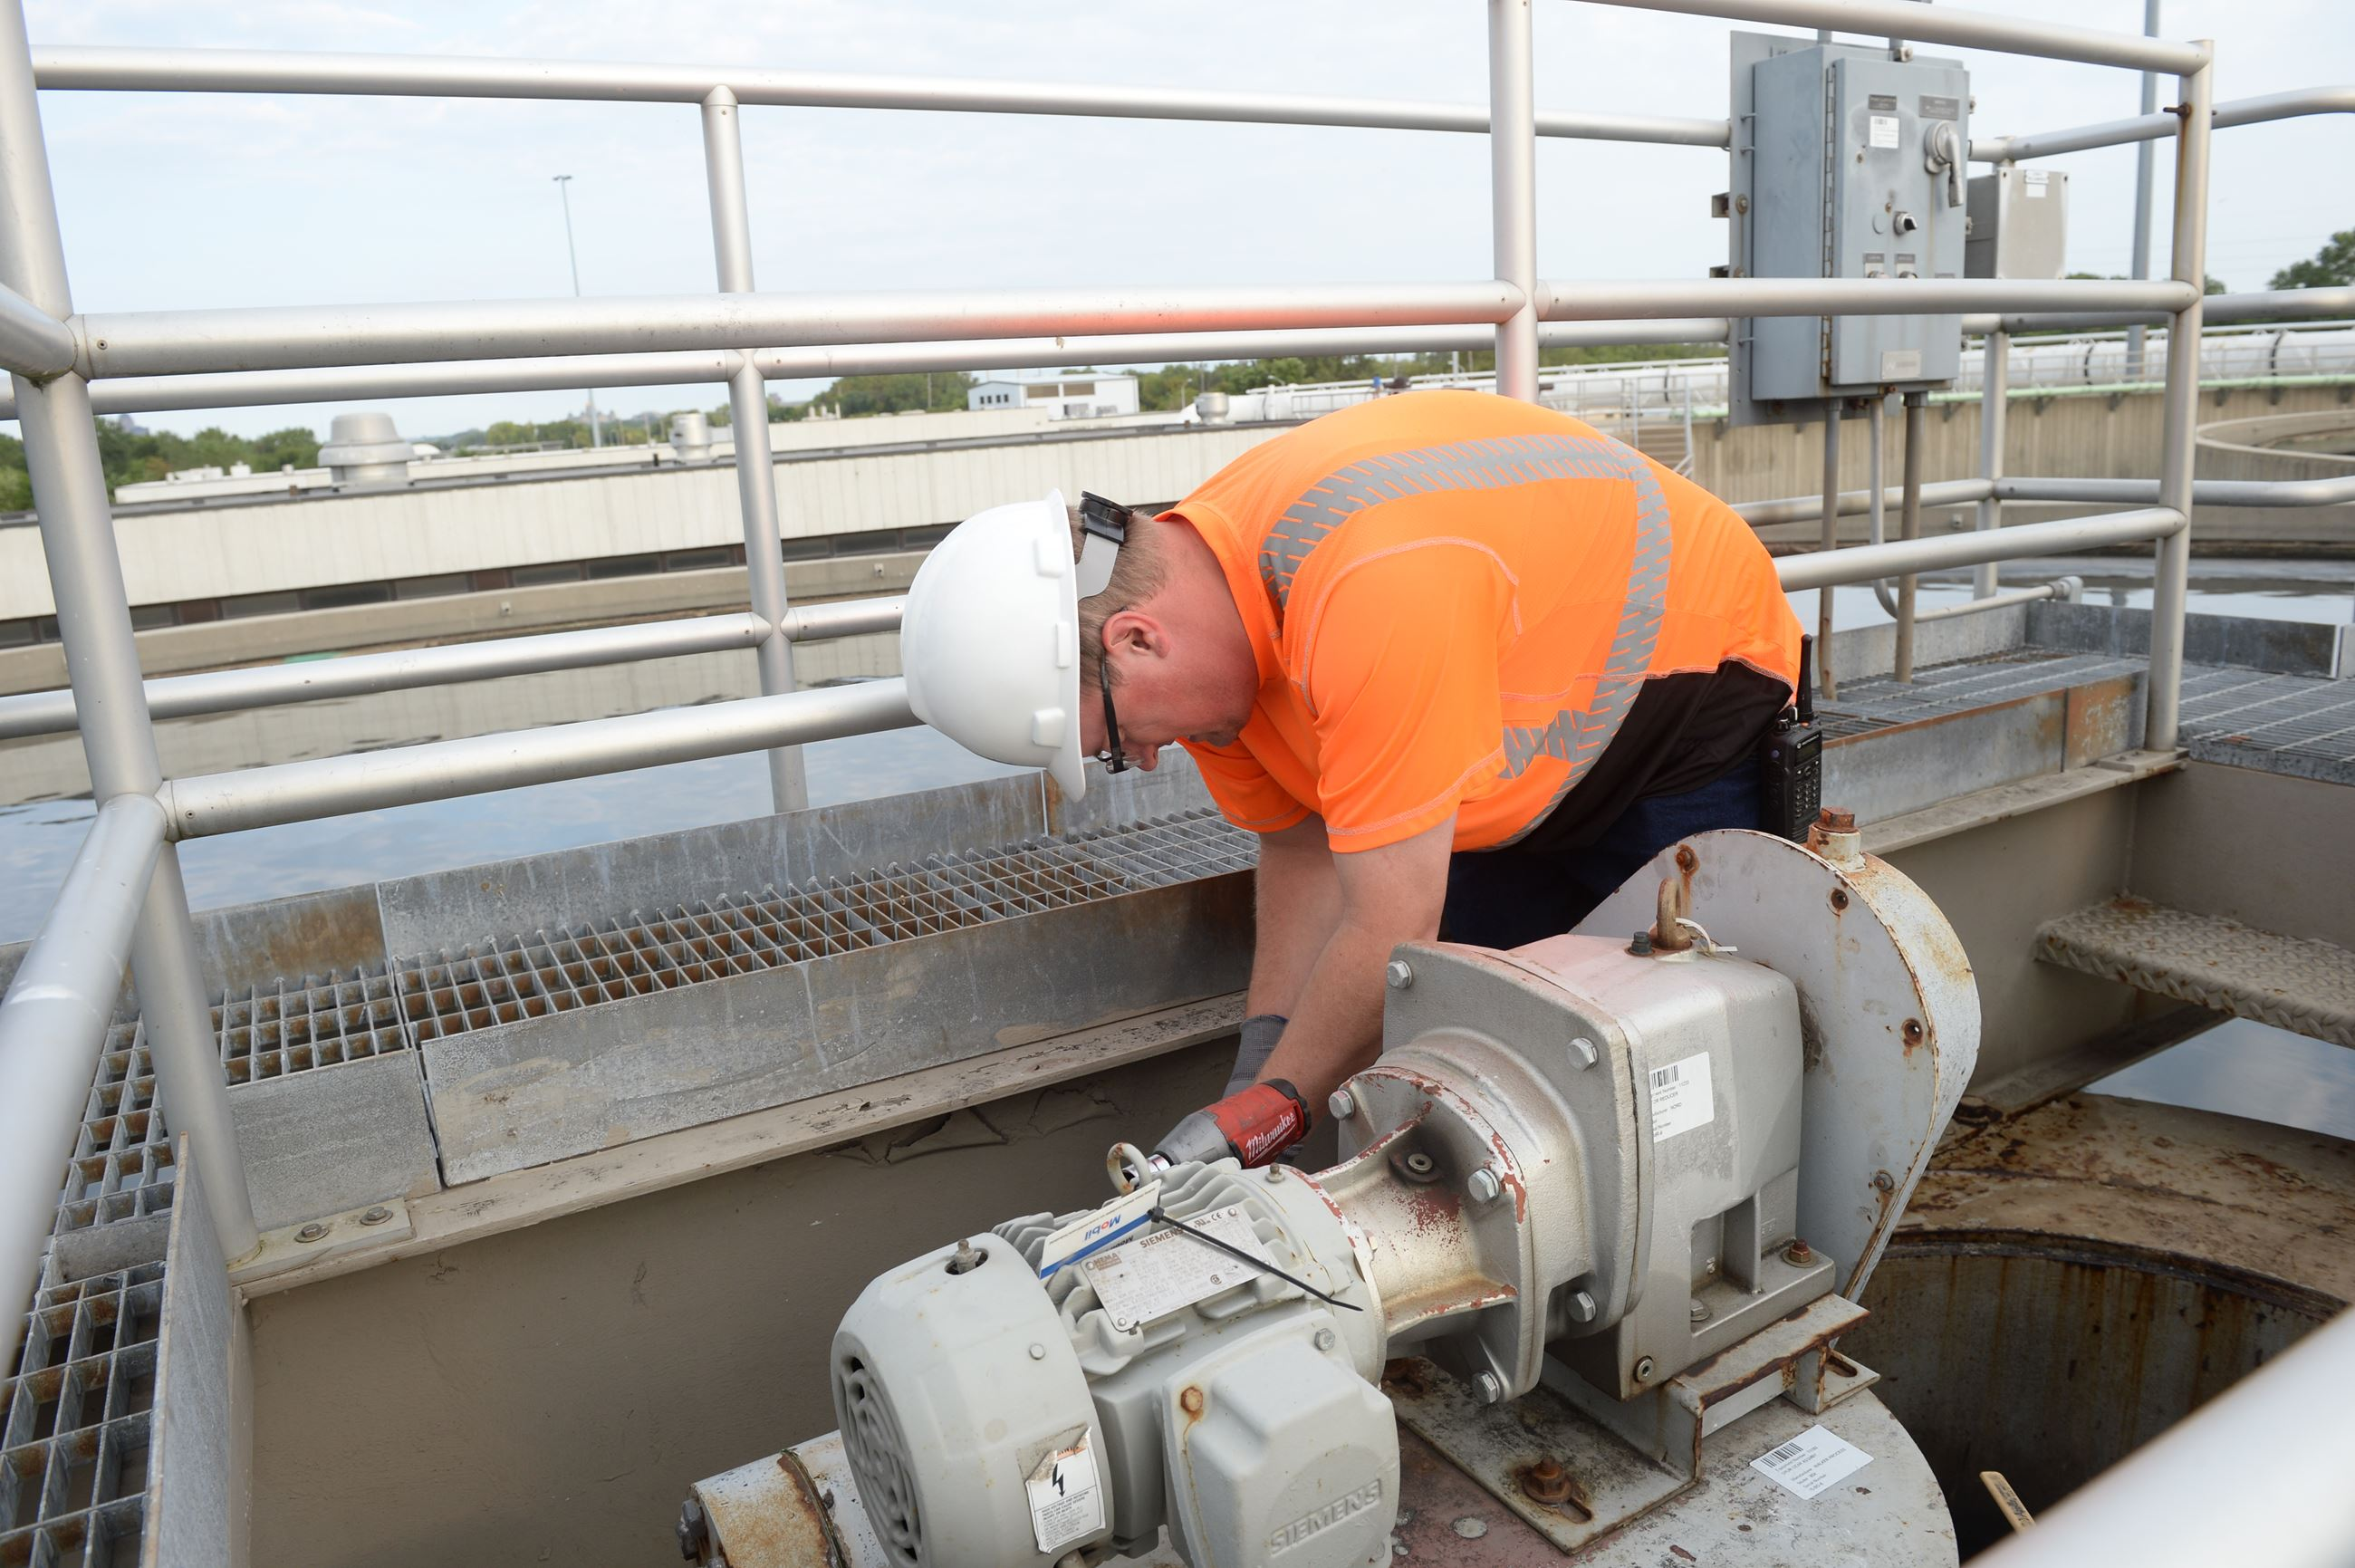 Employee Performing Preventive Maintenance